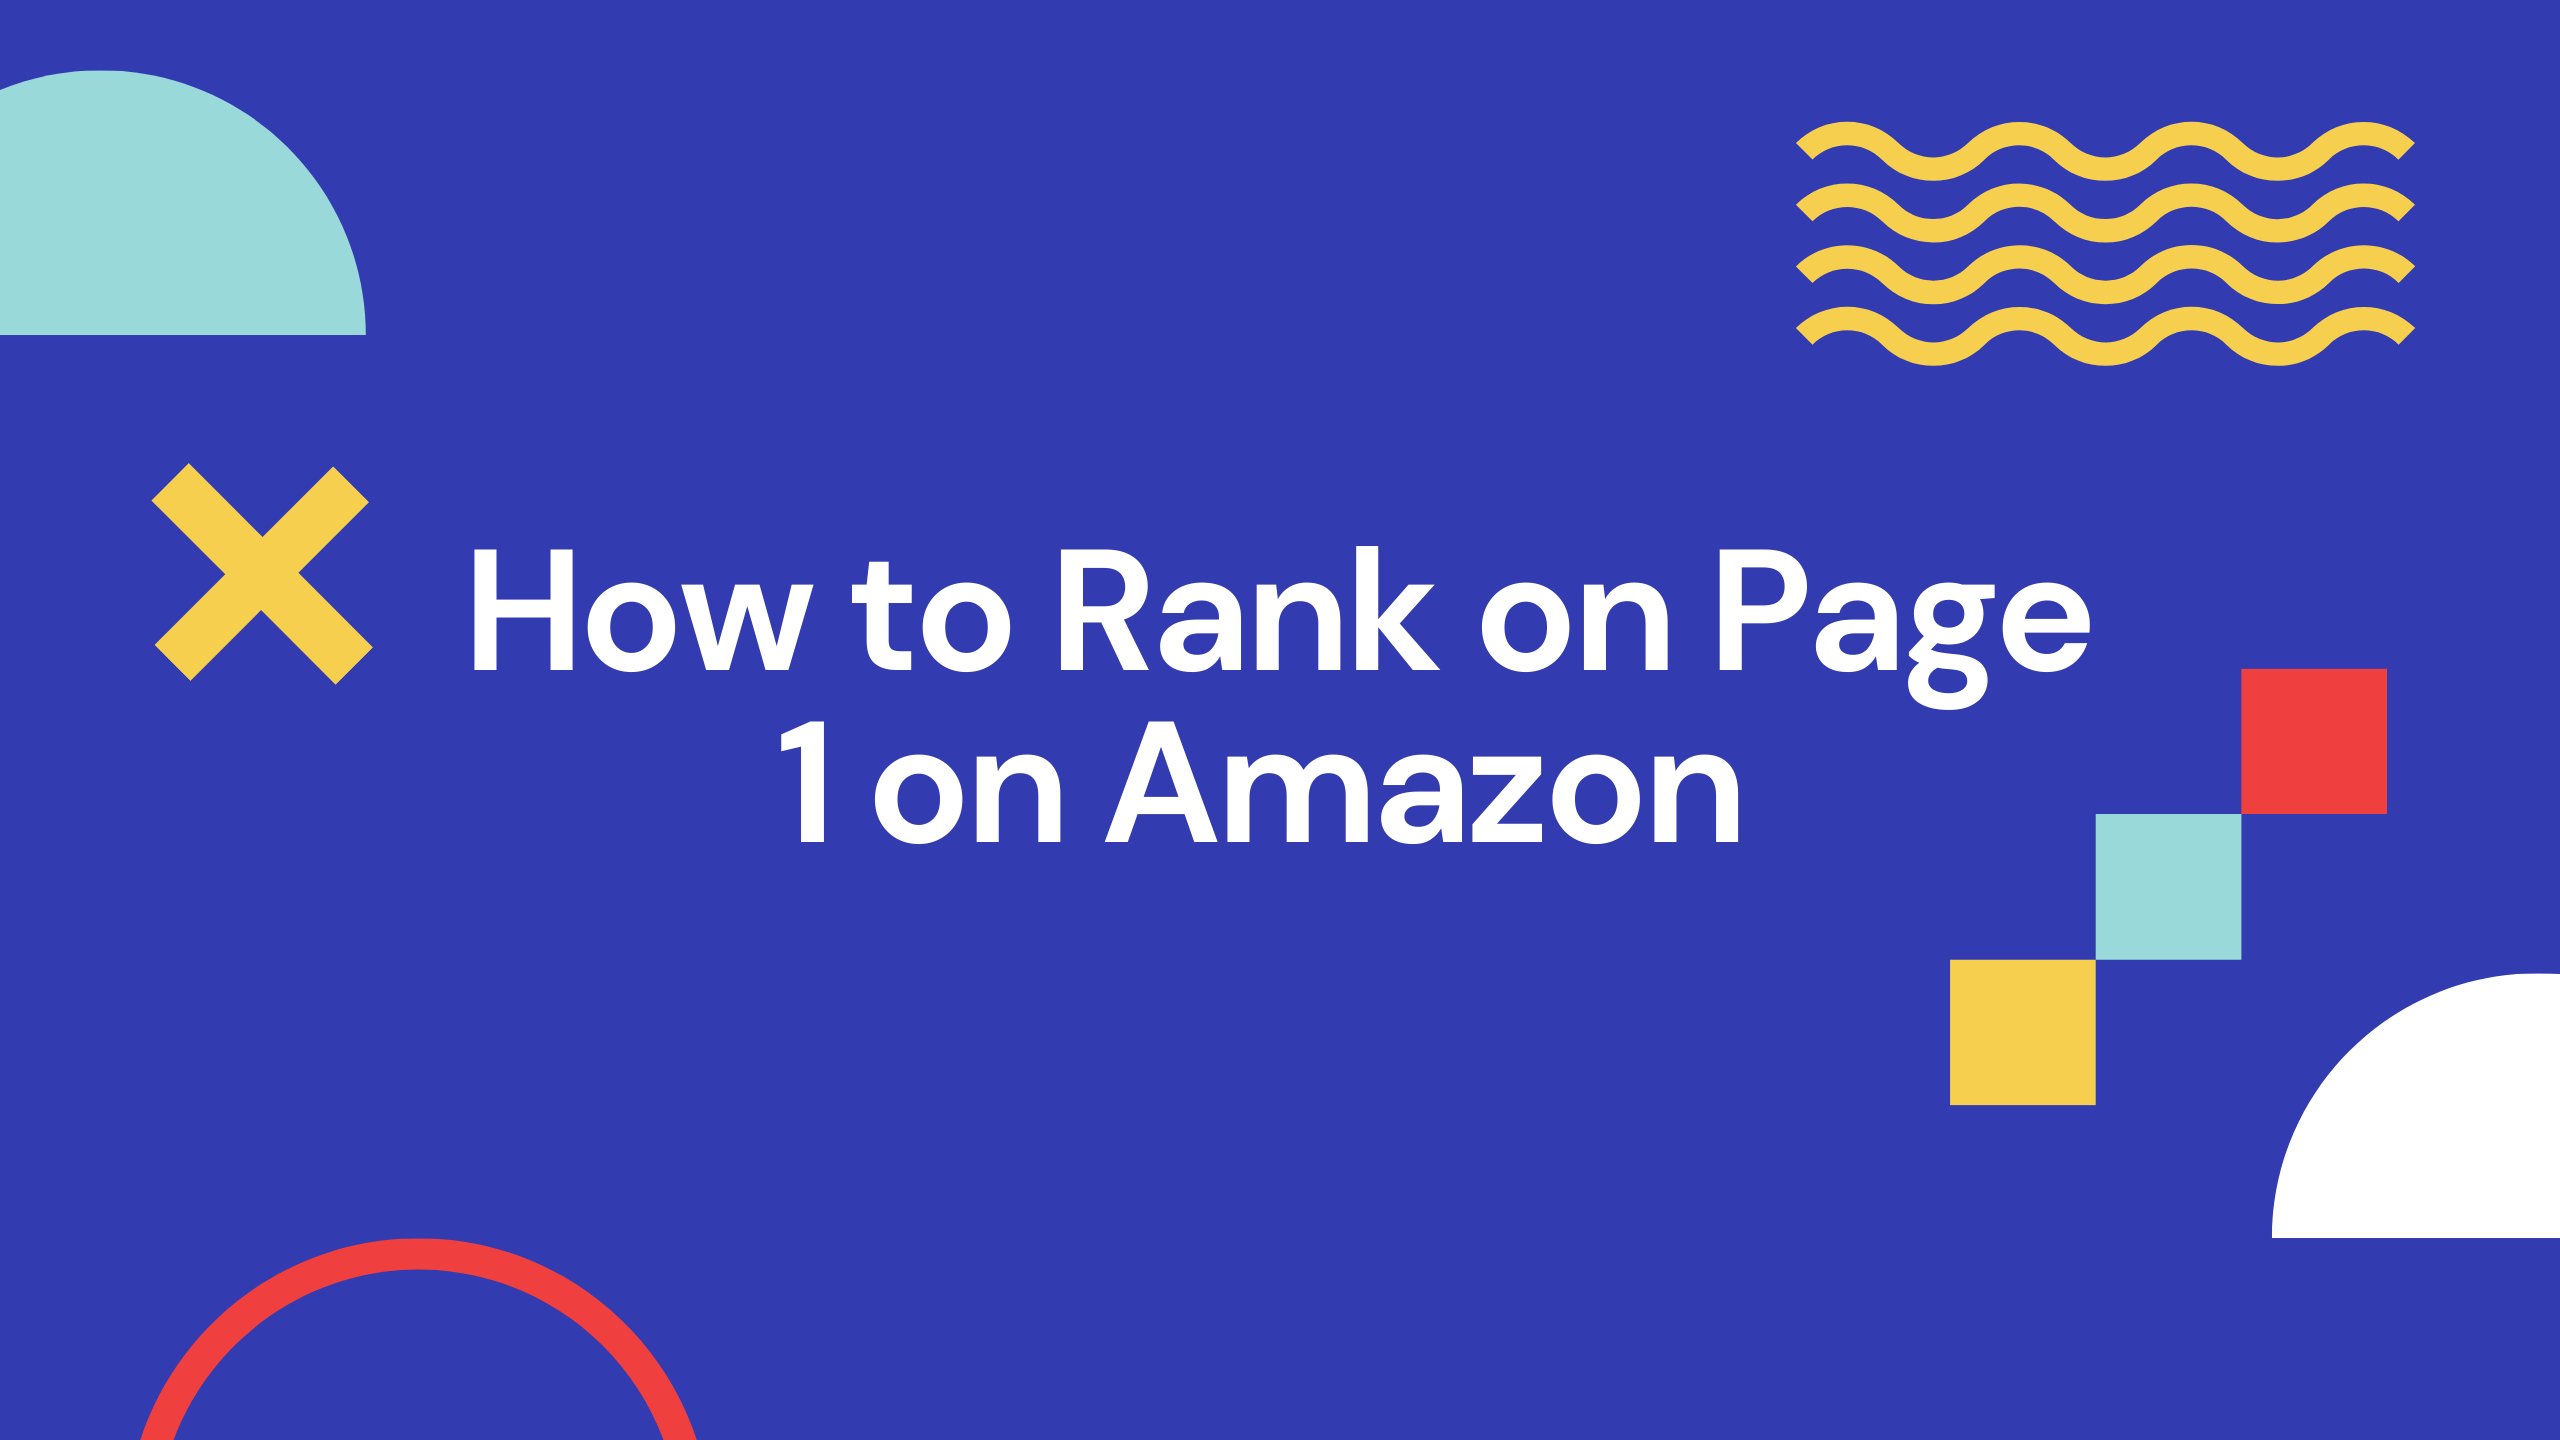 How to Rank Your Product on Page 1 of Amazon